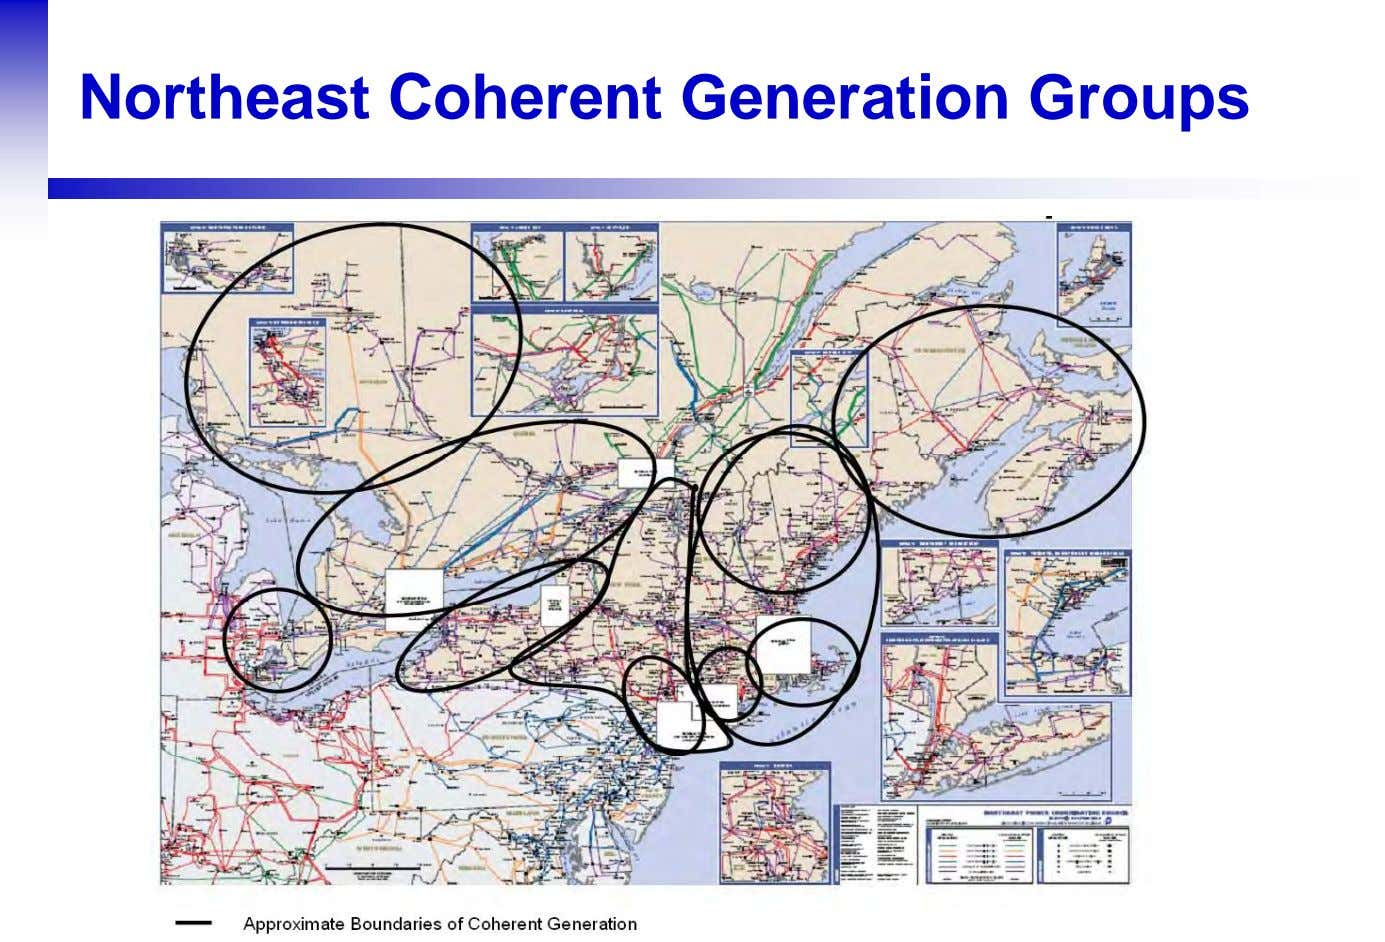 Northeast Coherent Generation Groups